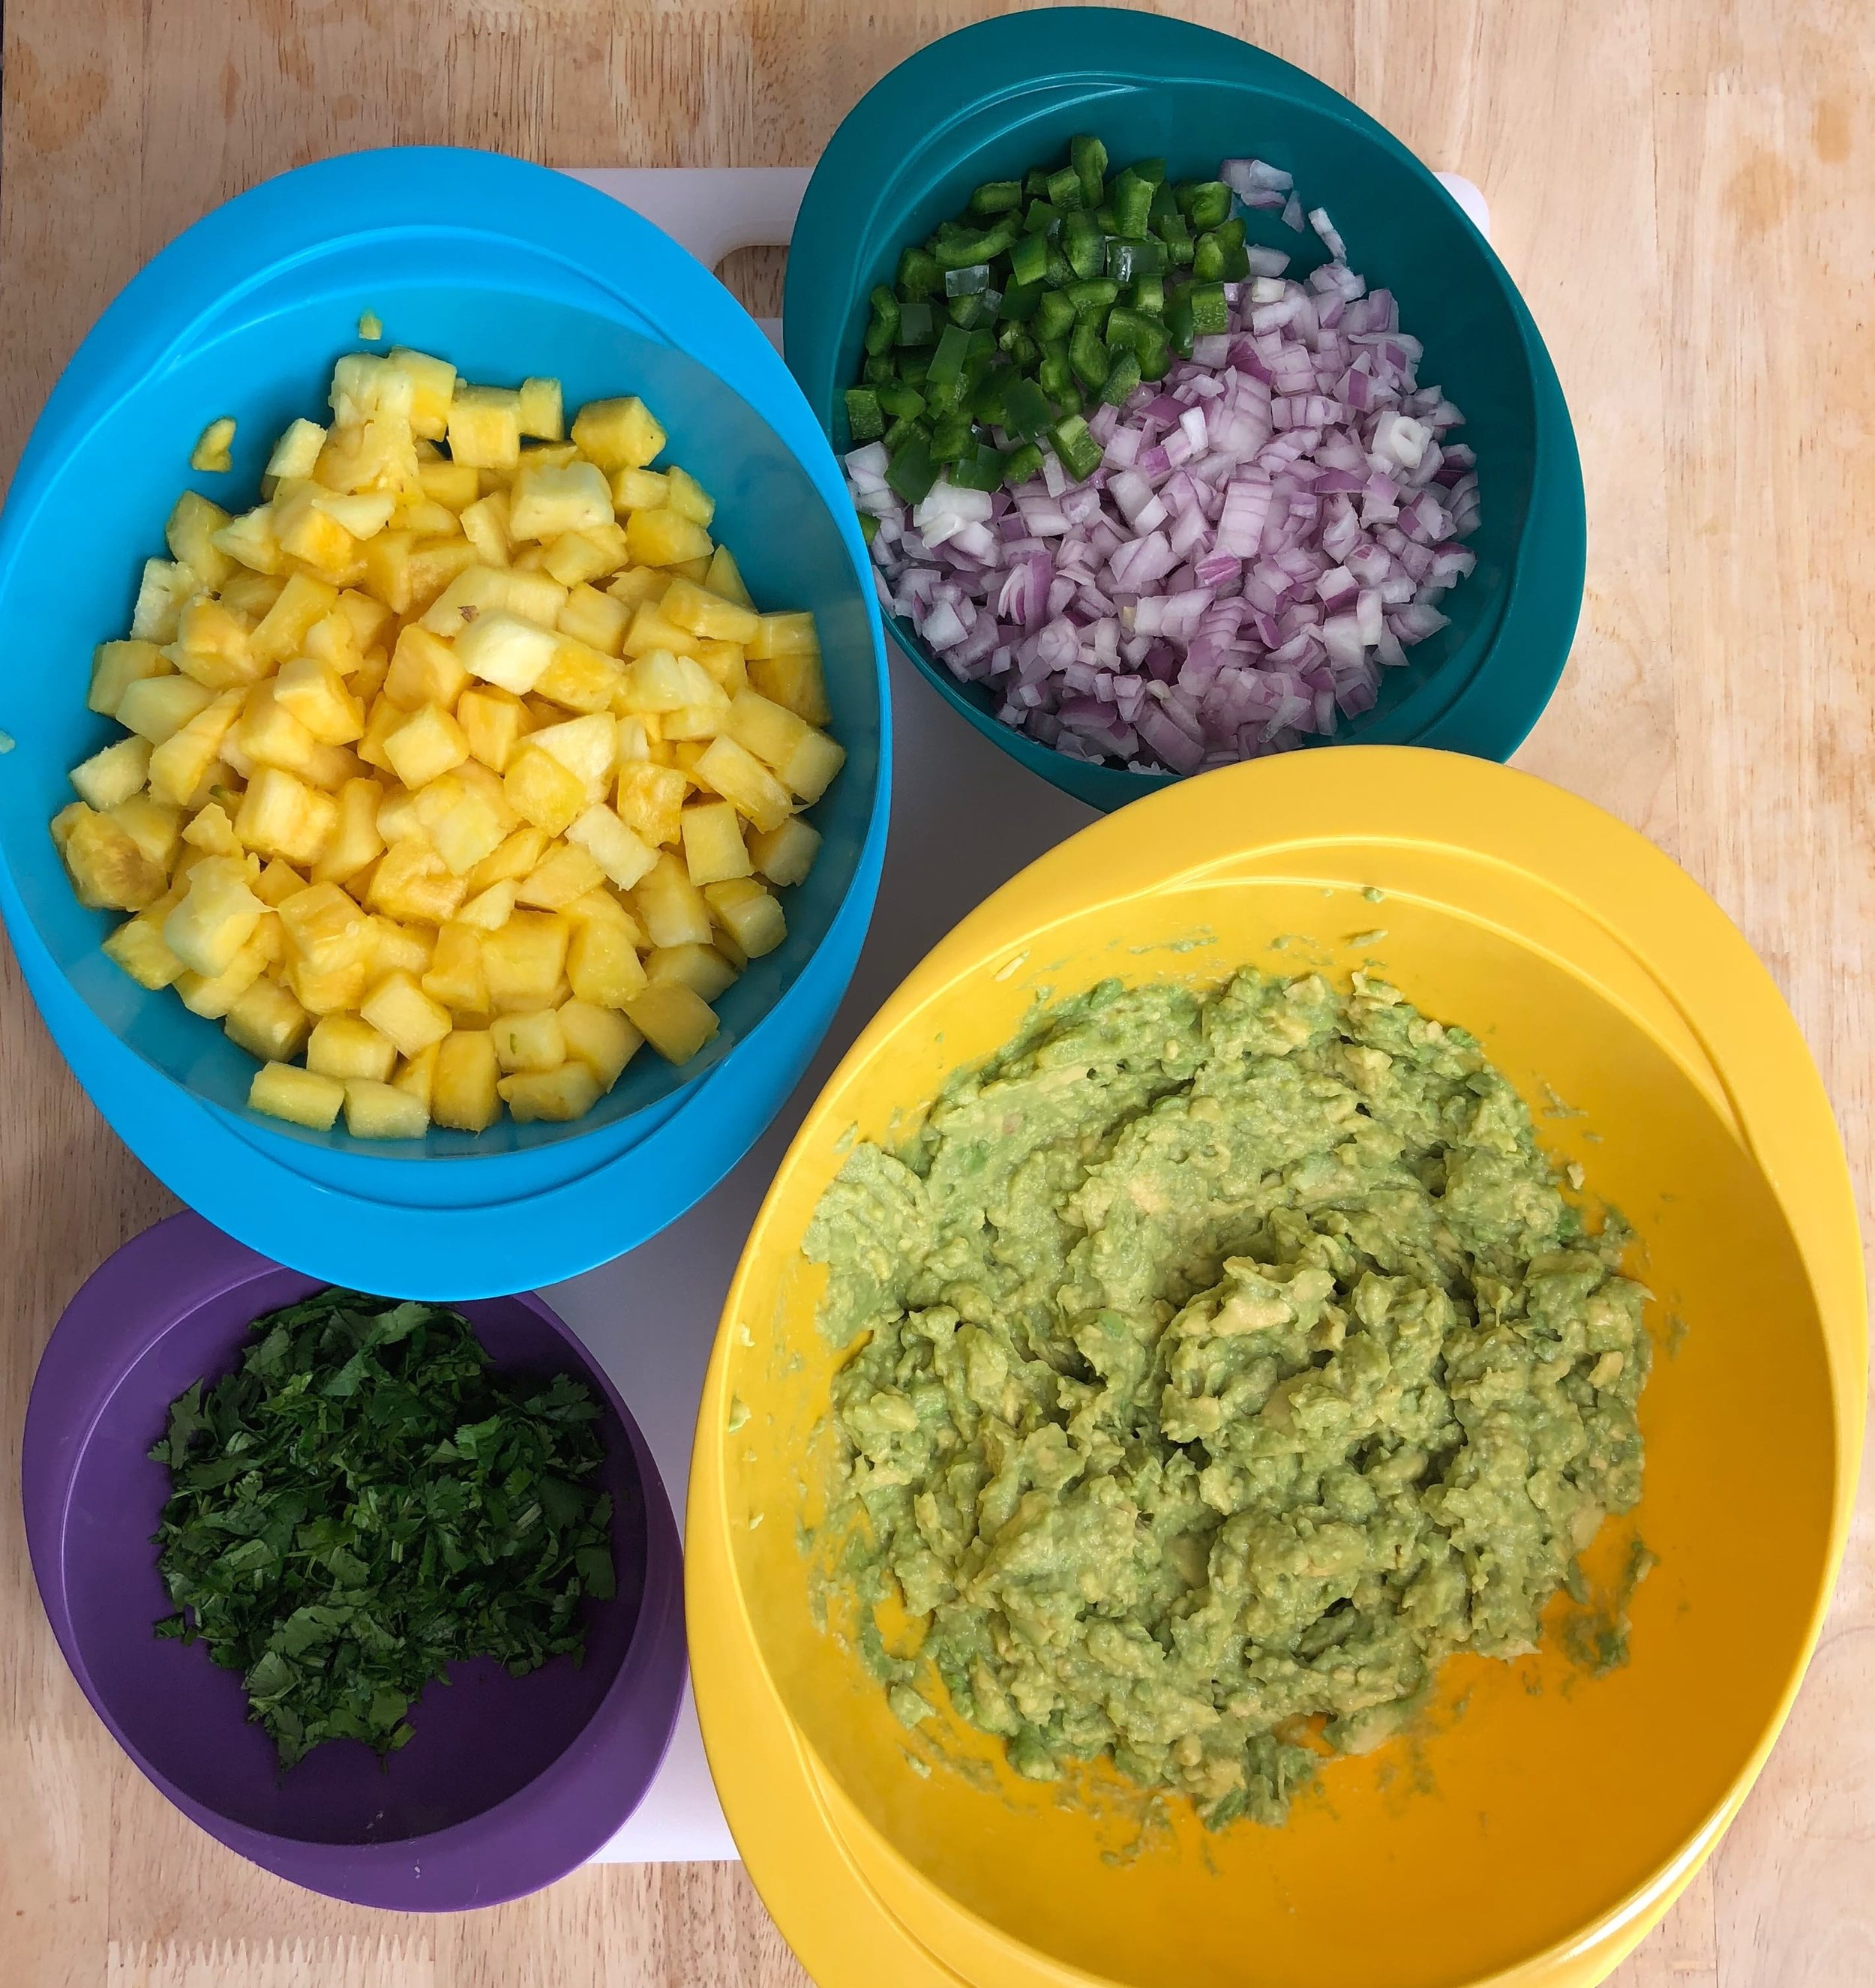 Guacamole Ingredients.jpg